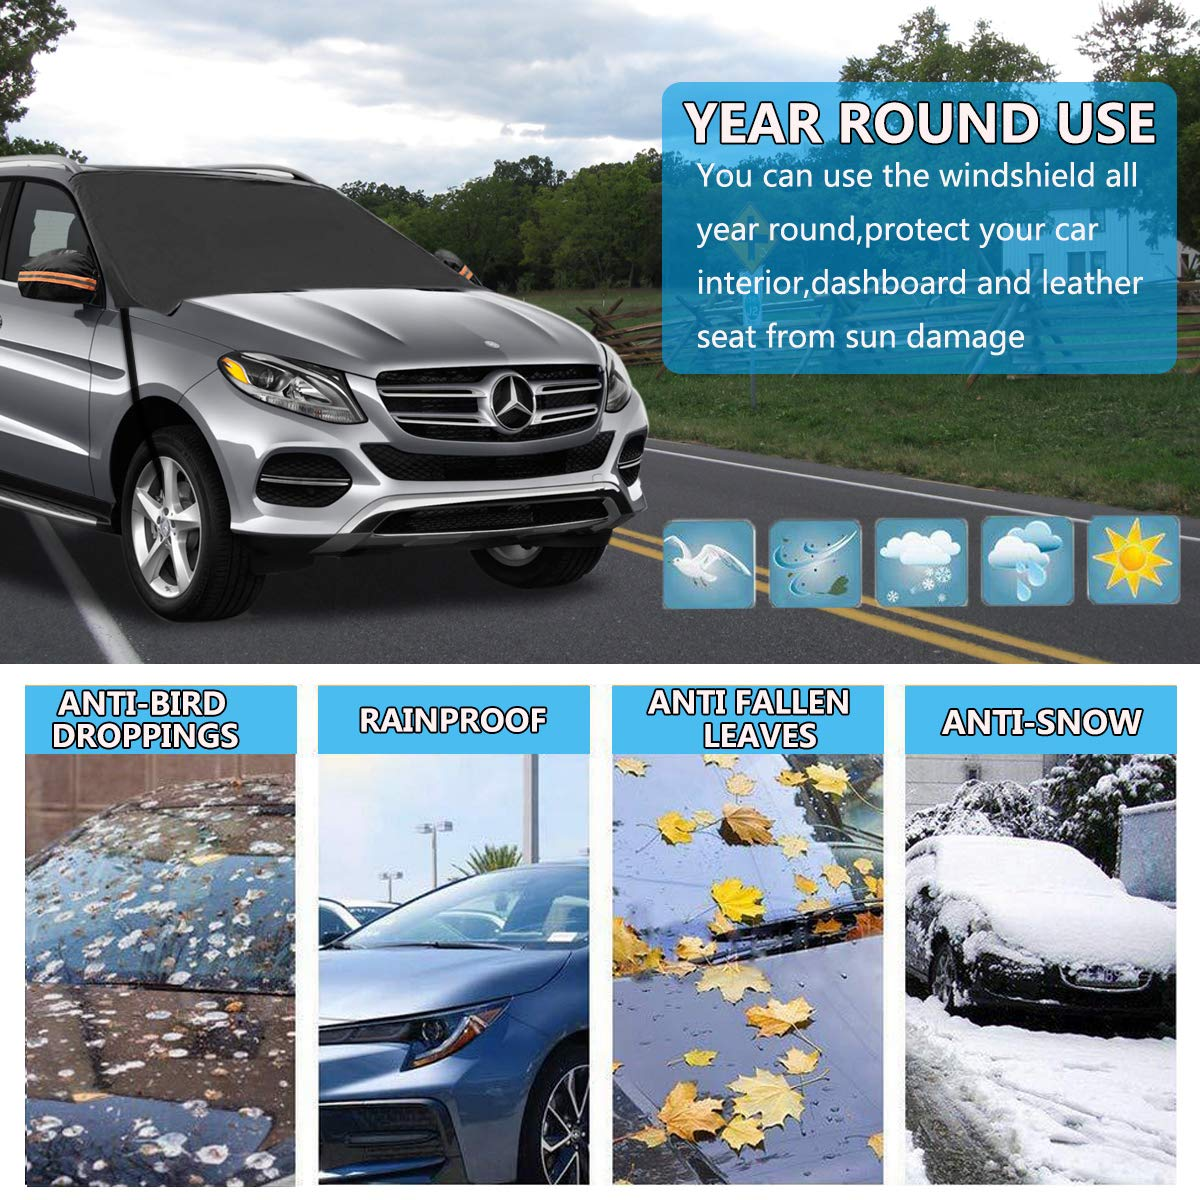 Cars 85x49 SUVs Trucks KASQA Car Windshield Snow Cover with Side Mirror Covers,Extra Large Windshield Cover for Ice and Snow Waterproof Sun Protection Fits for Most Vehicles